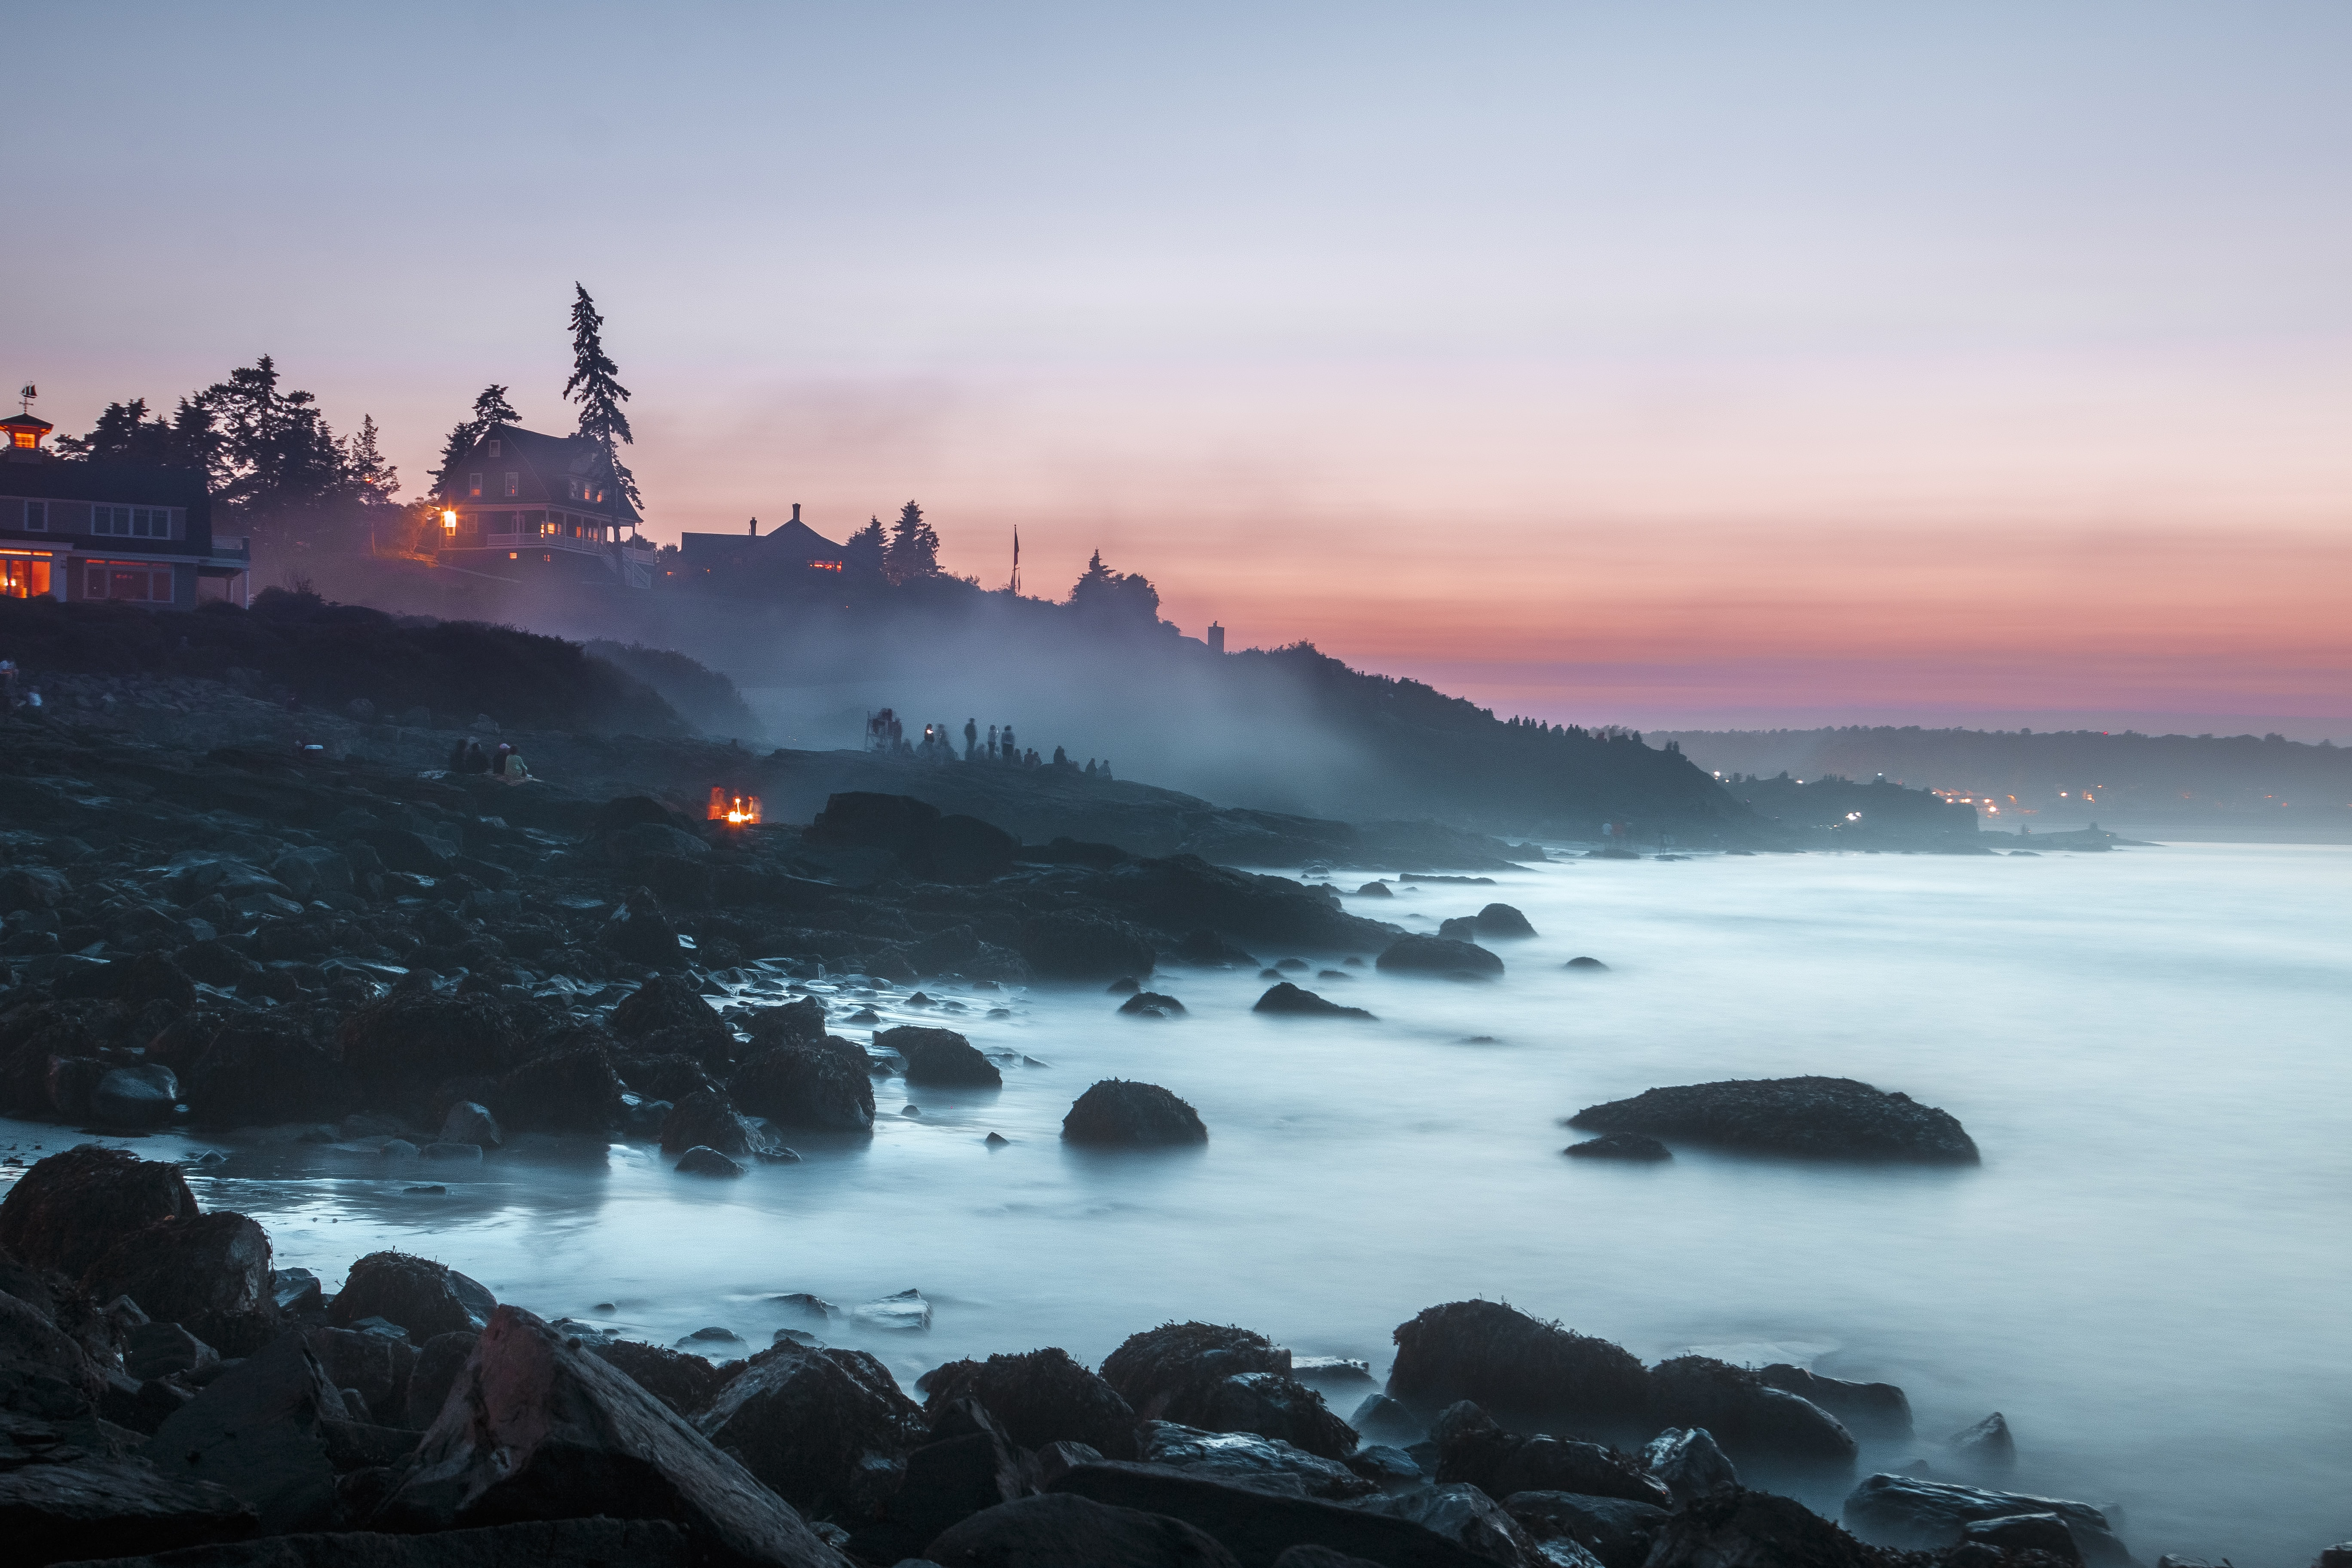 Sunset on a rocky coastline of Ogunquit where groups of people are watching an ocean mist rising from the waters